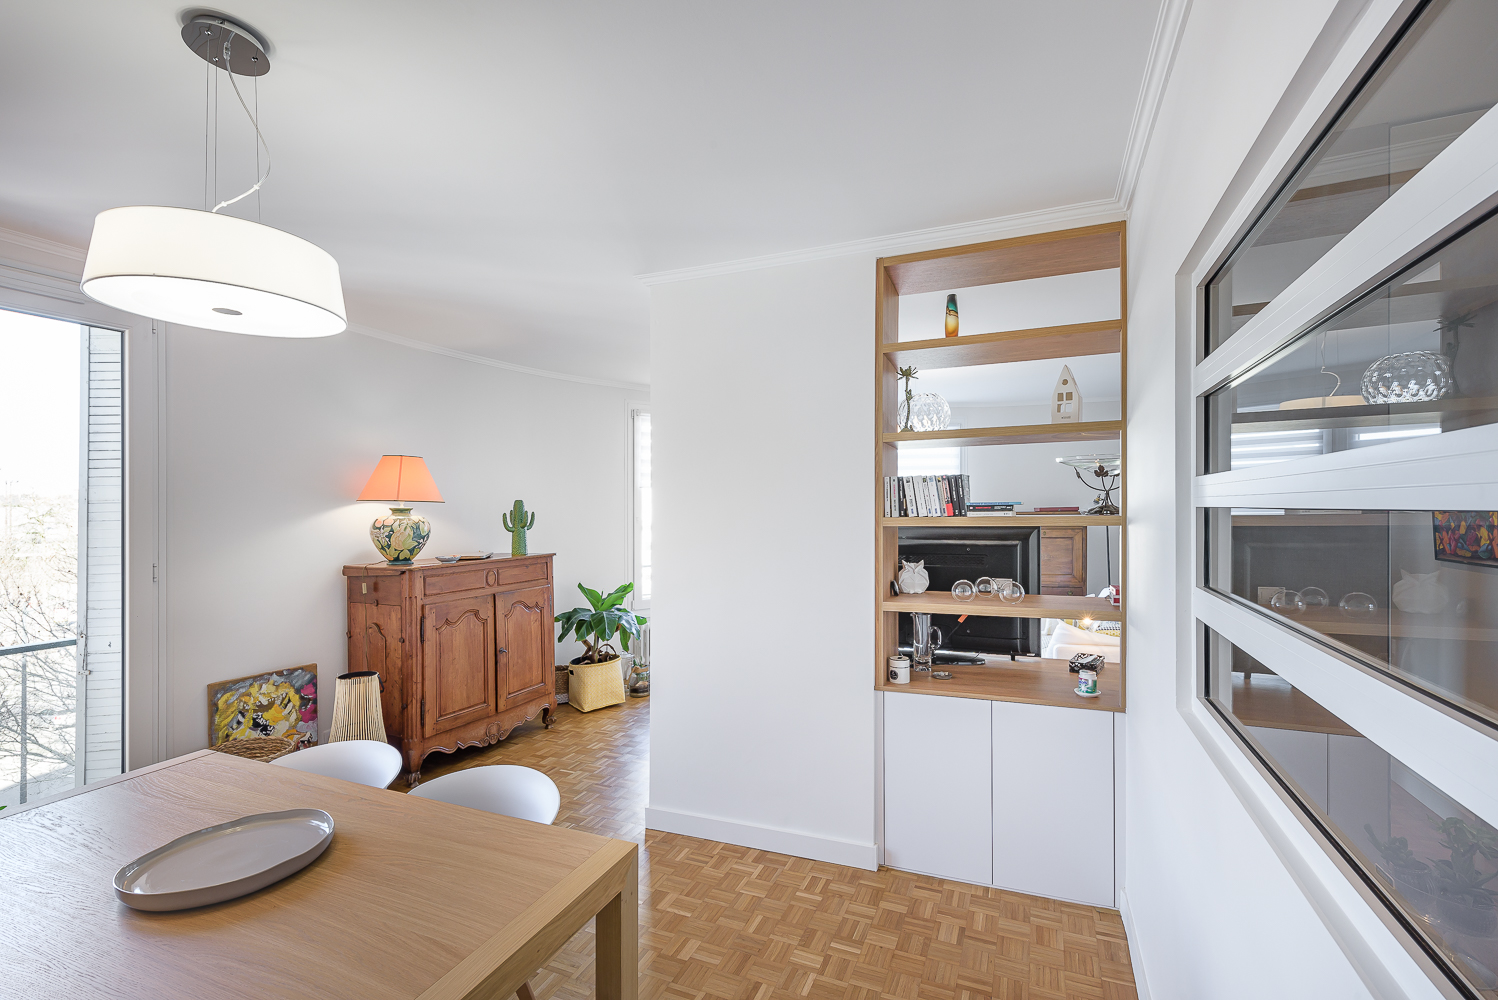 photographe d'architecture ©INTERVALphoto : ROCHER T. architecte, appartement, Rennes (35)